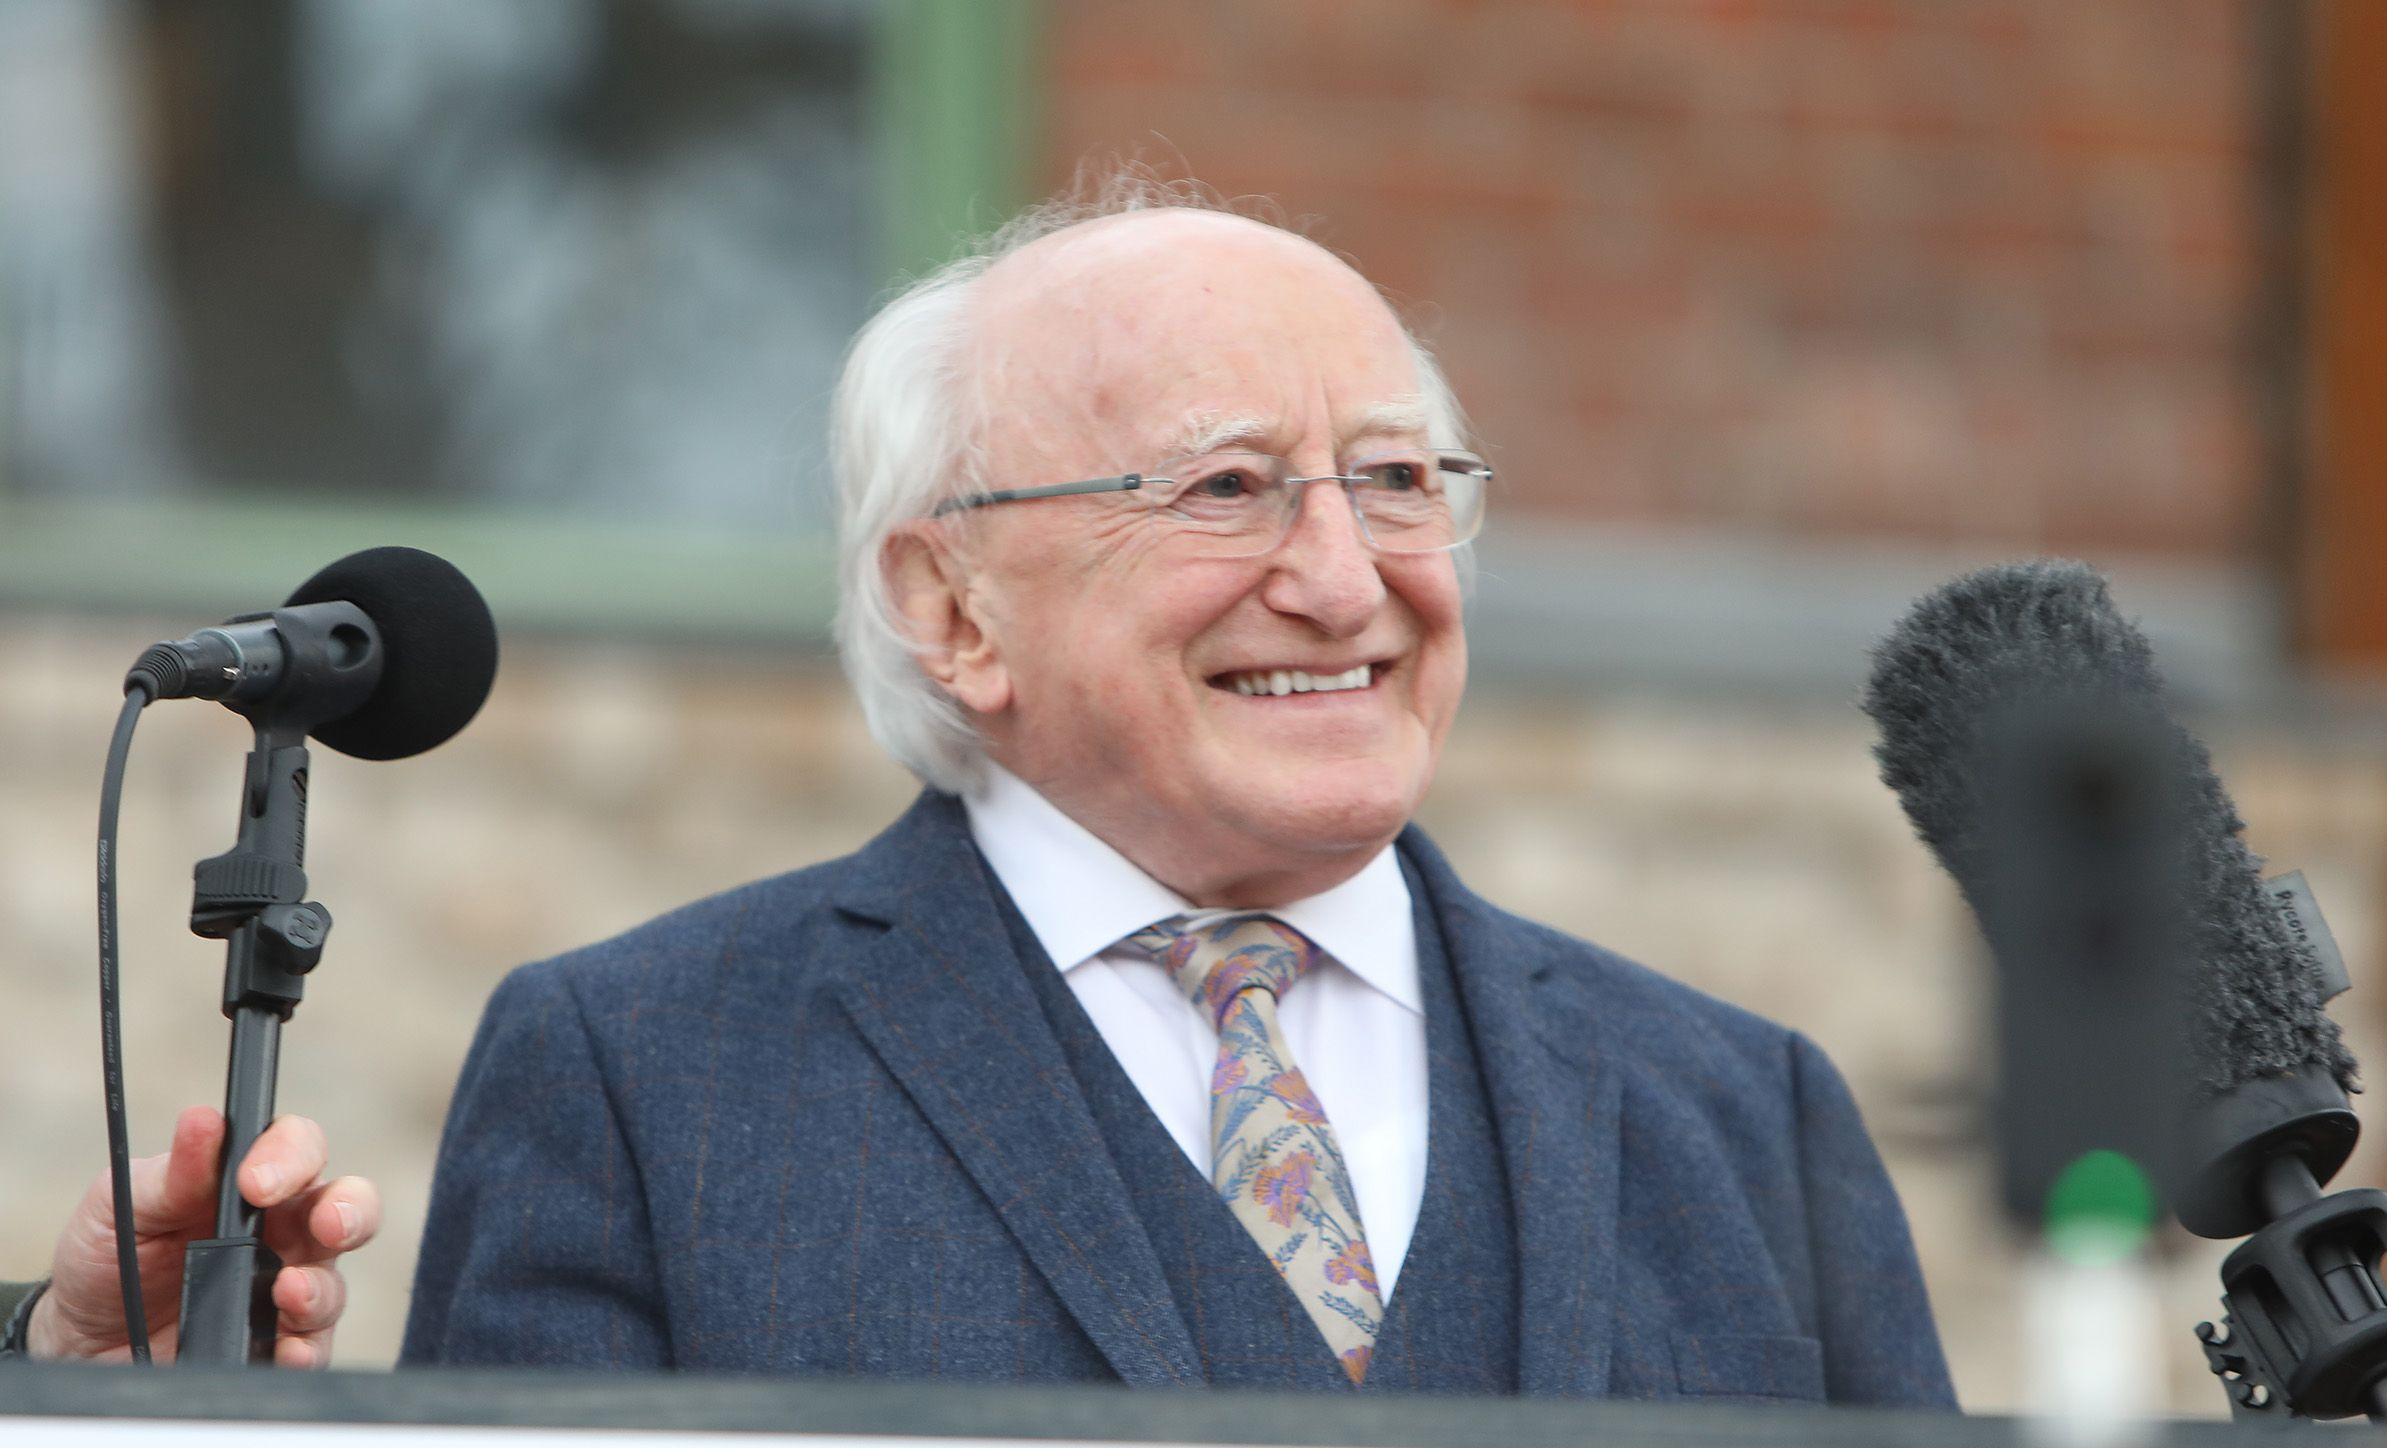 MISSING SOMETHING: President Higgins' thinking on colonialism is clear-eyed, but only up to a point